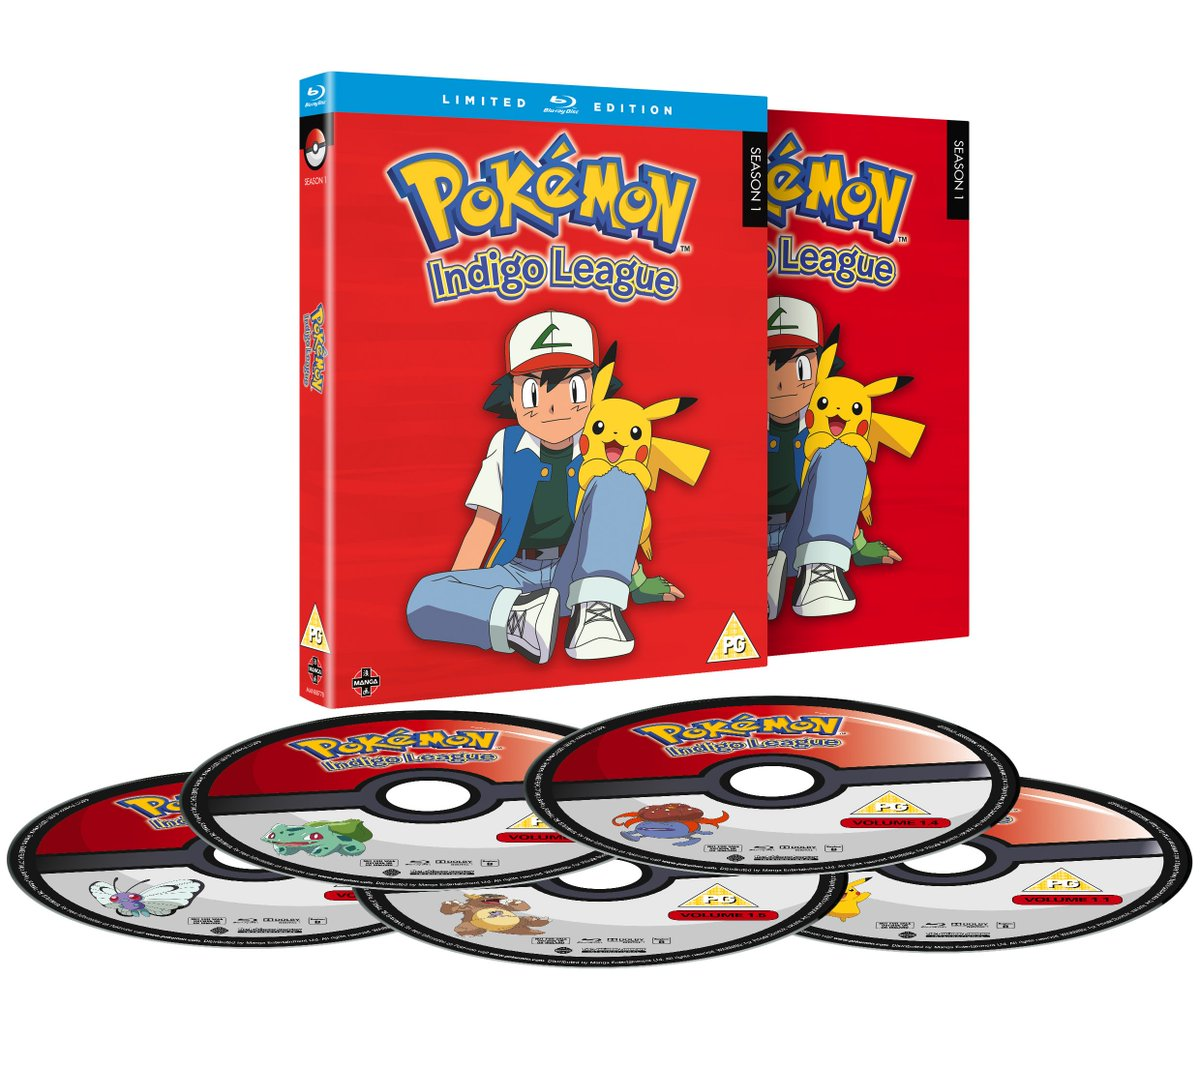 Image result for POKEMON INDIGO LEAGUE UK BLU-RAY MANGAUK